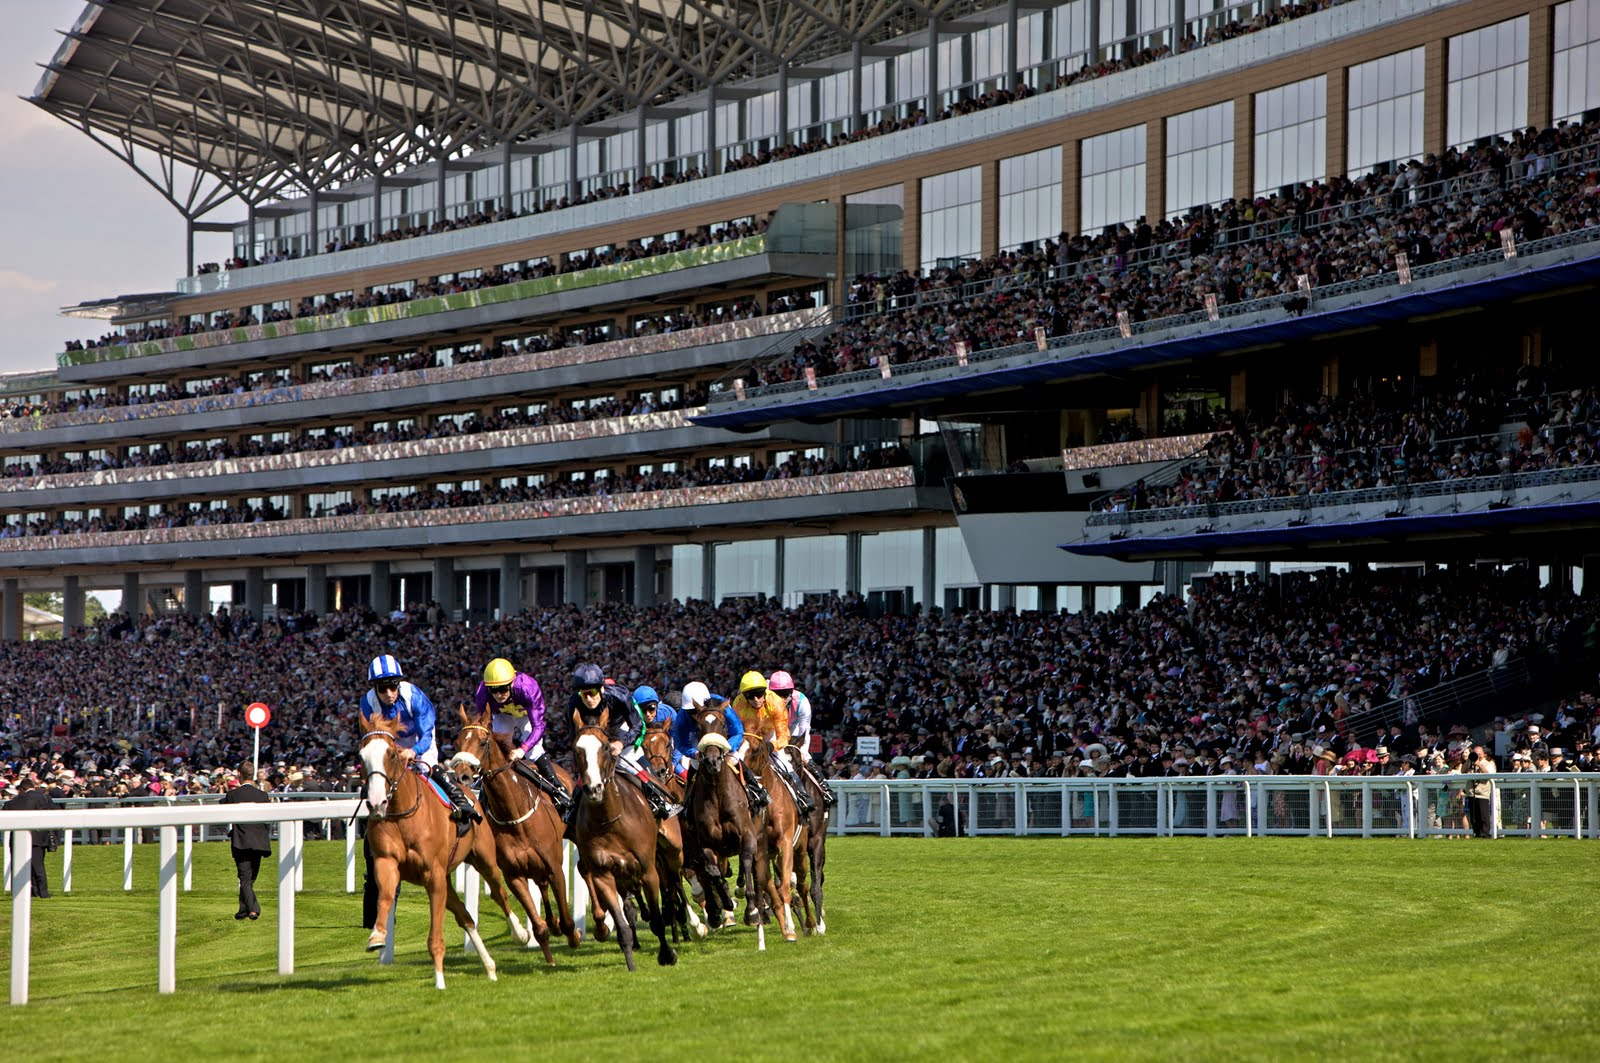 Ascot has been a source of enjoyment for royalty and regulars alike for three centuries.